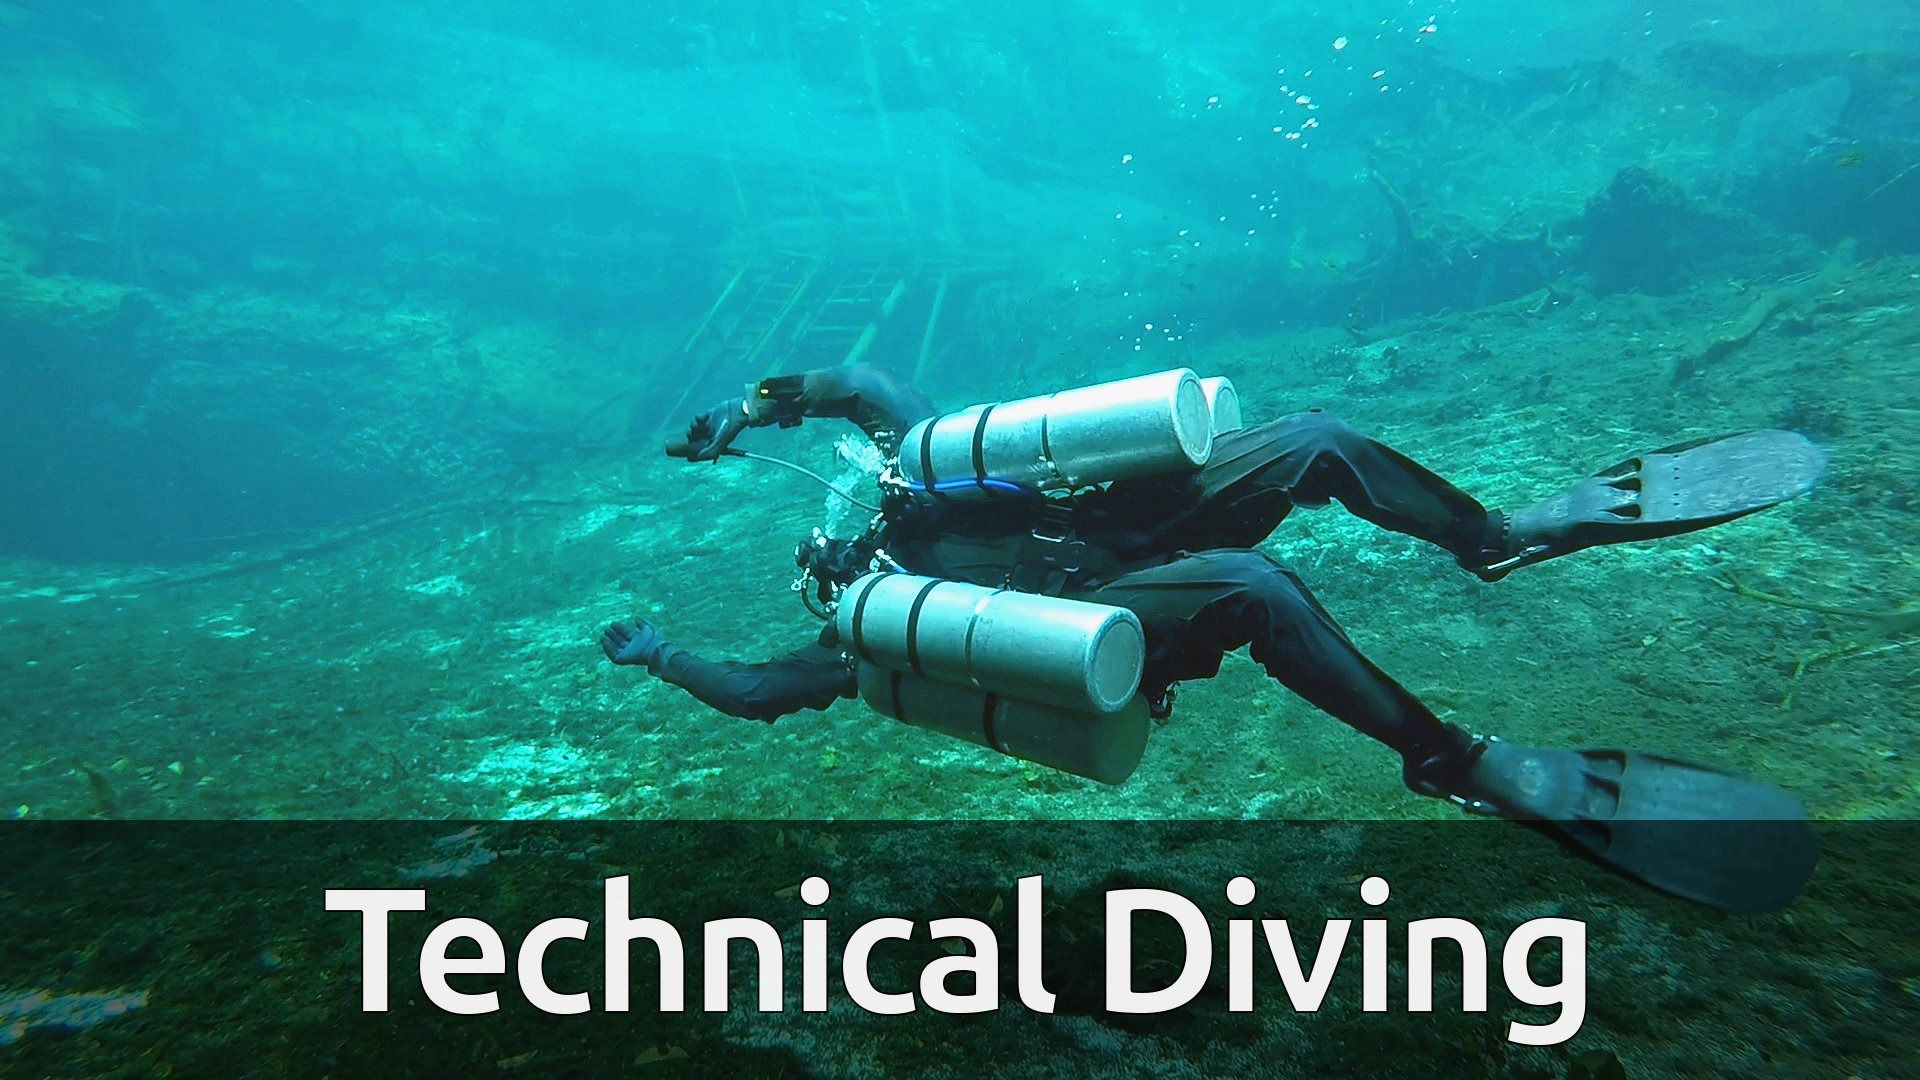 Technical Diving Course | 3 h 46 min split over 30 videos